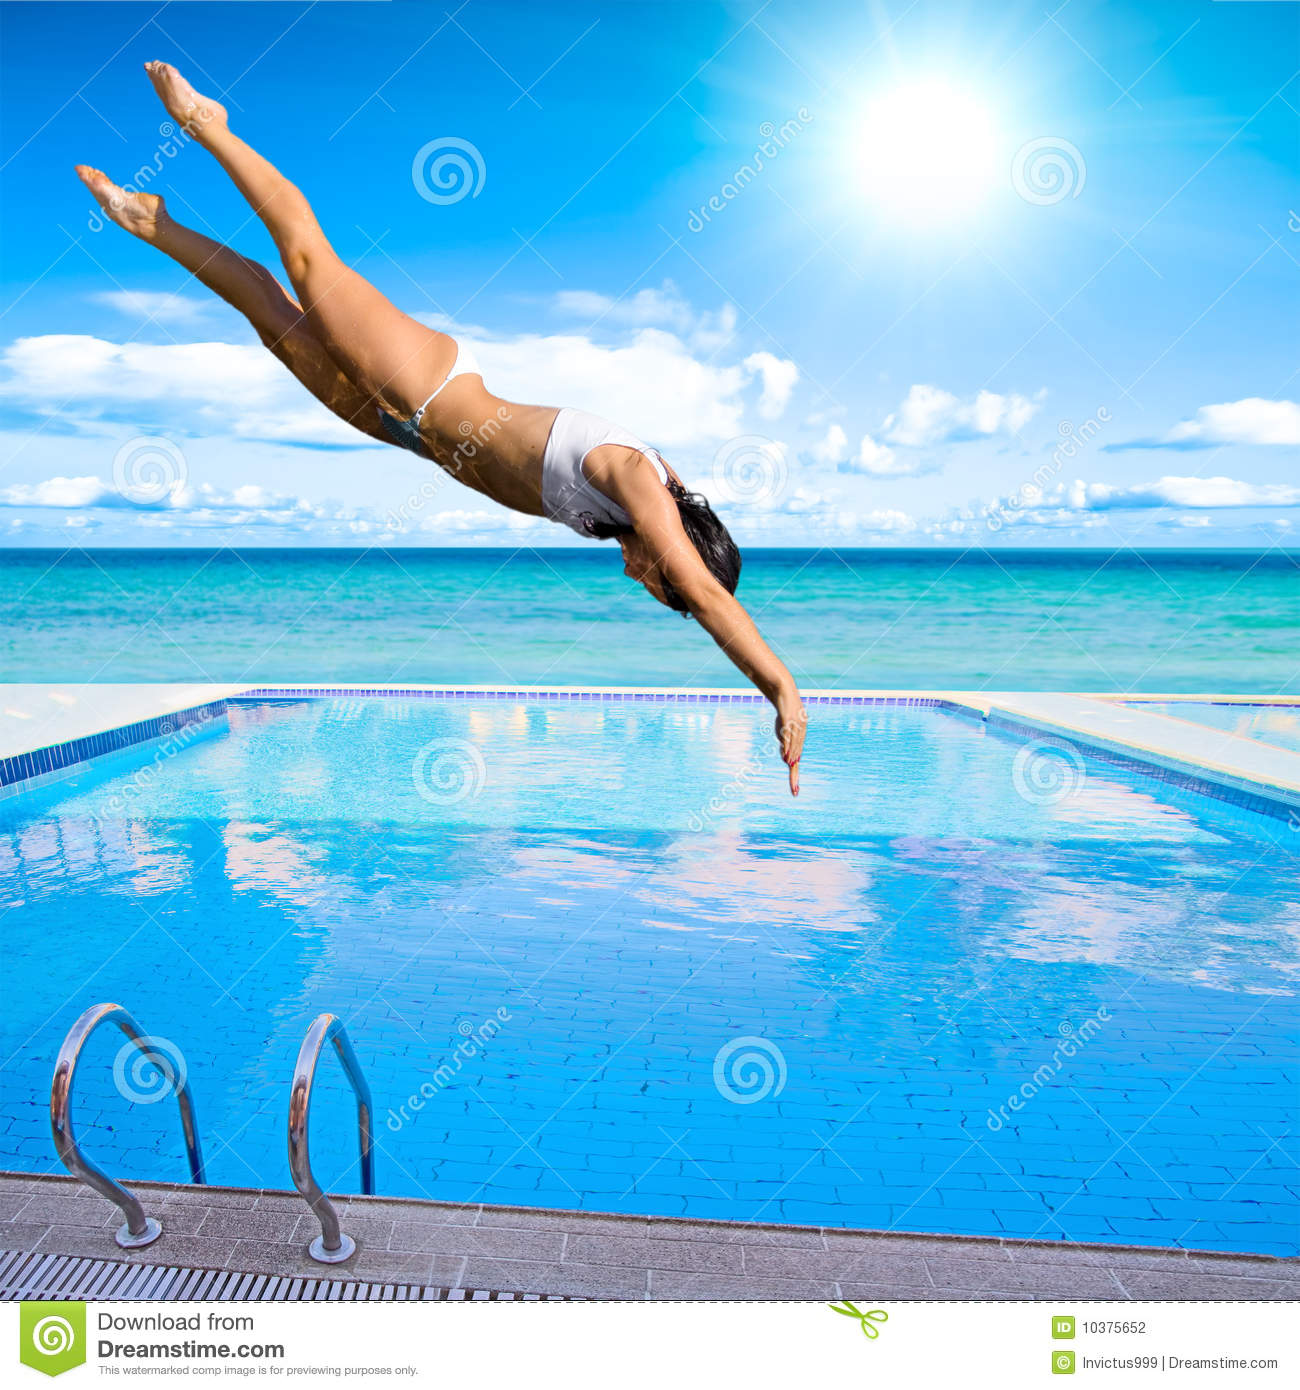 Girl Diving Into Pool Stock Photography Image 10375652